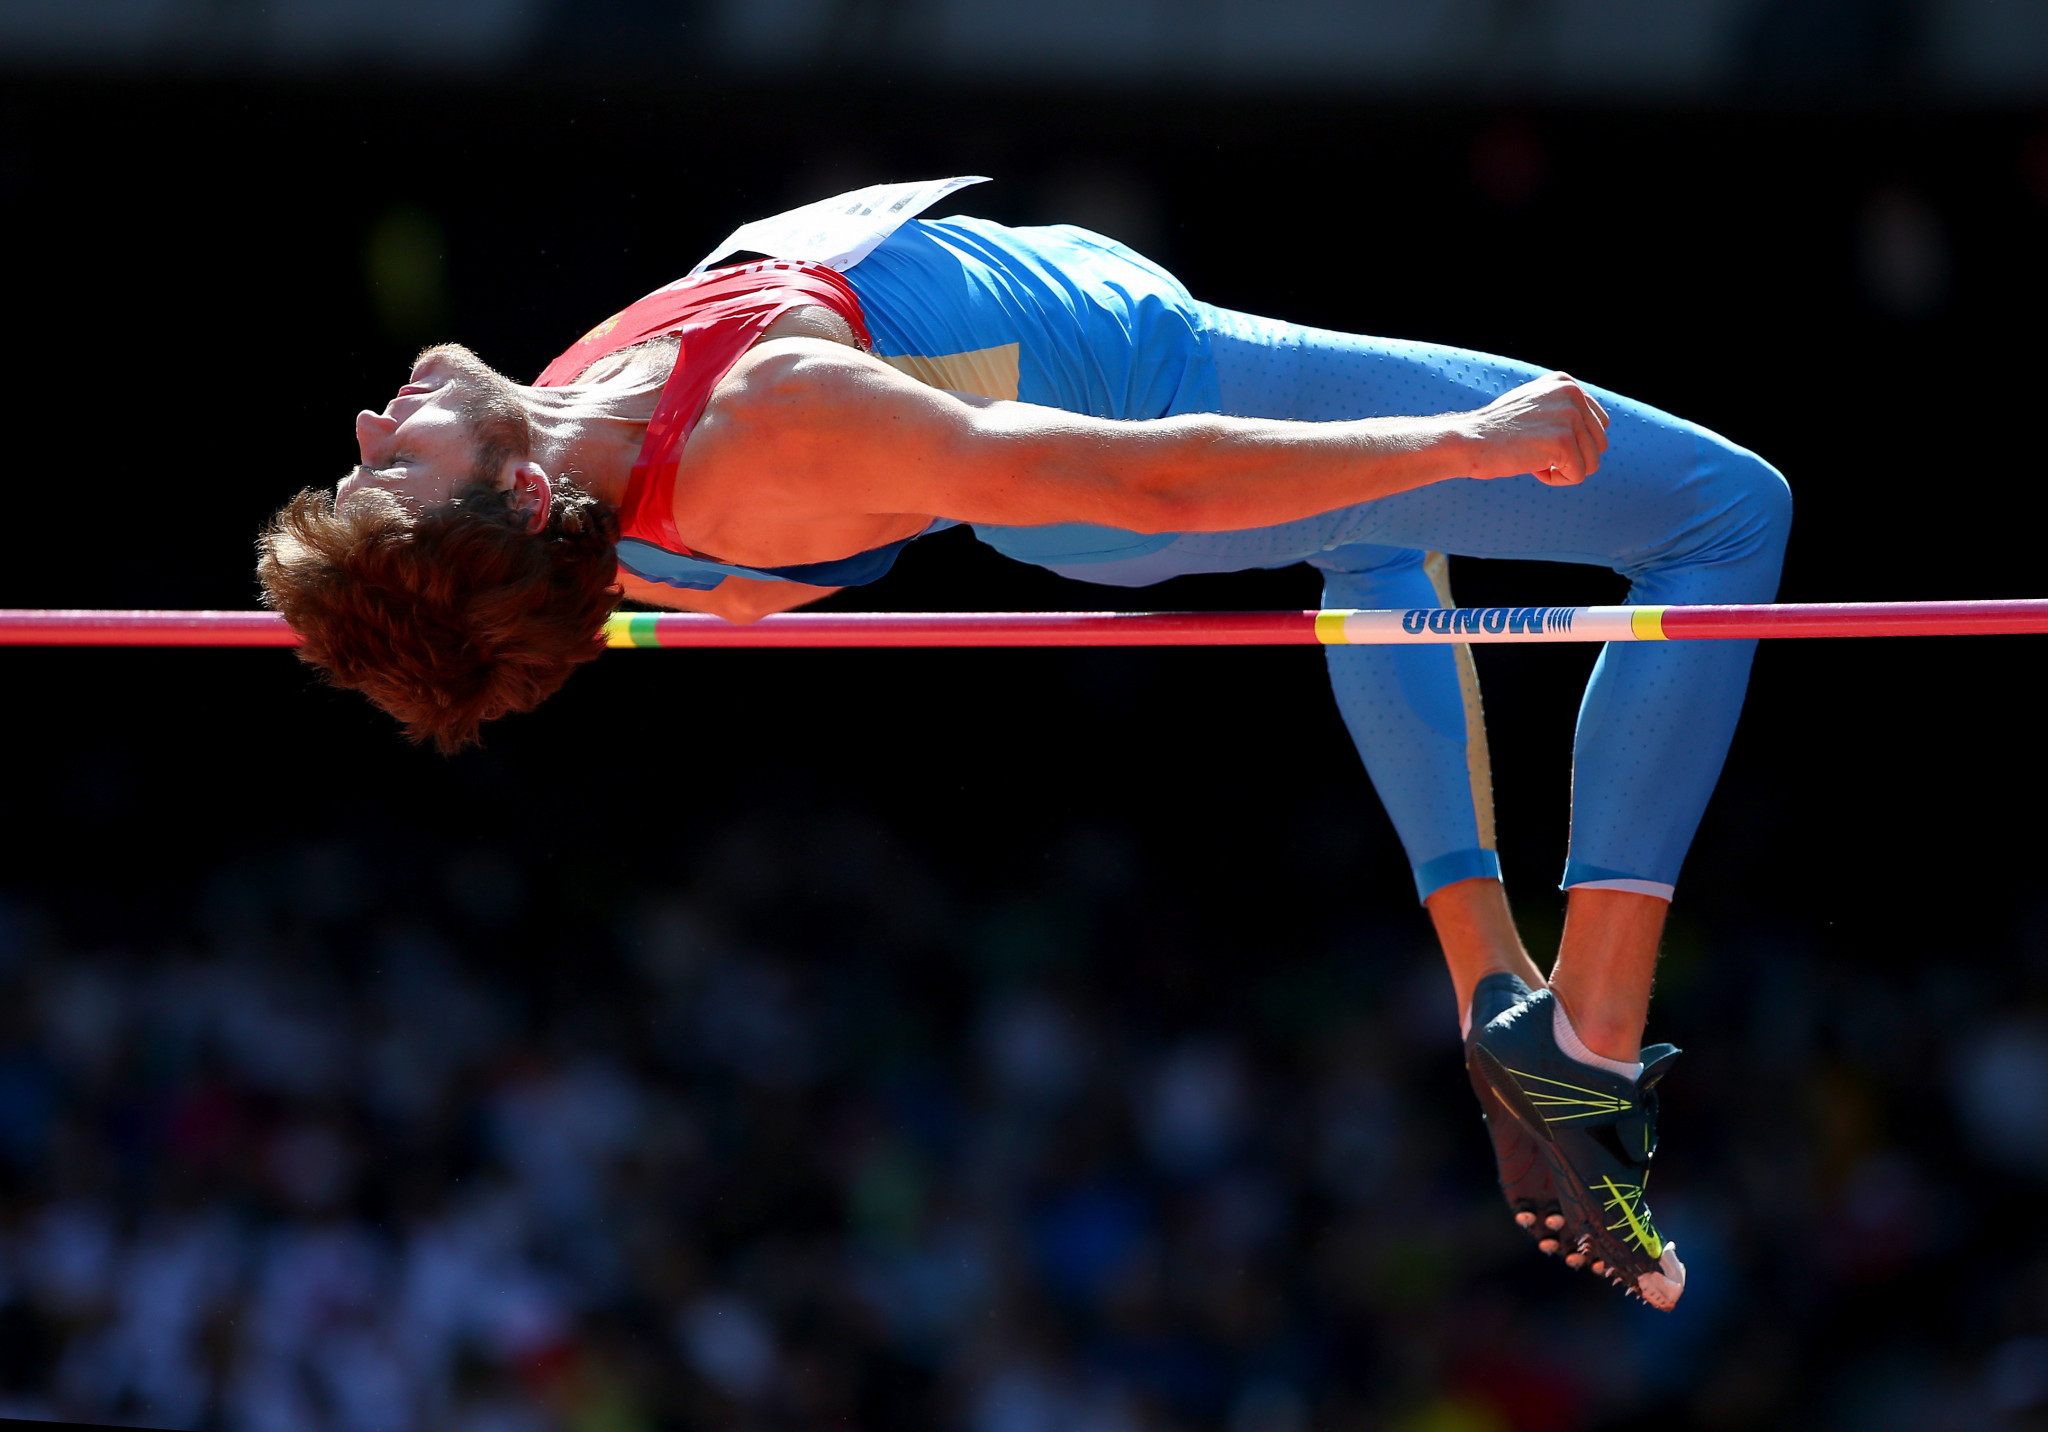 The 2012 Olympic high jump gold medallist Ivan Ukhov was one of the high profile Russian athletes sanctioned by the Court of Arbitration for Sport ©Getty Images